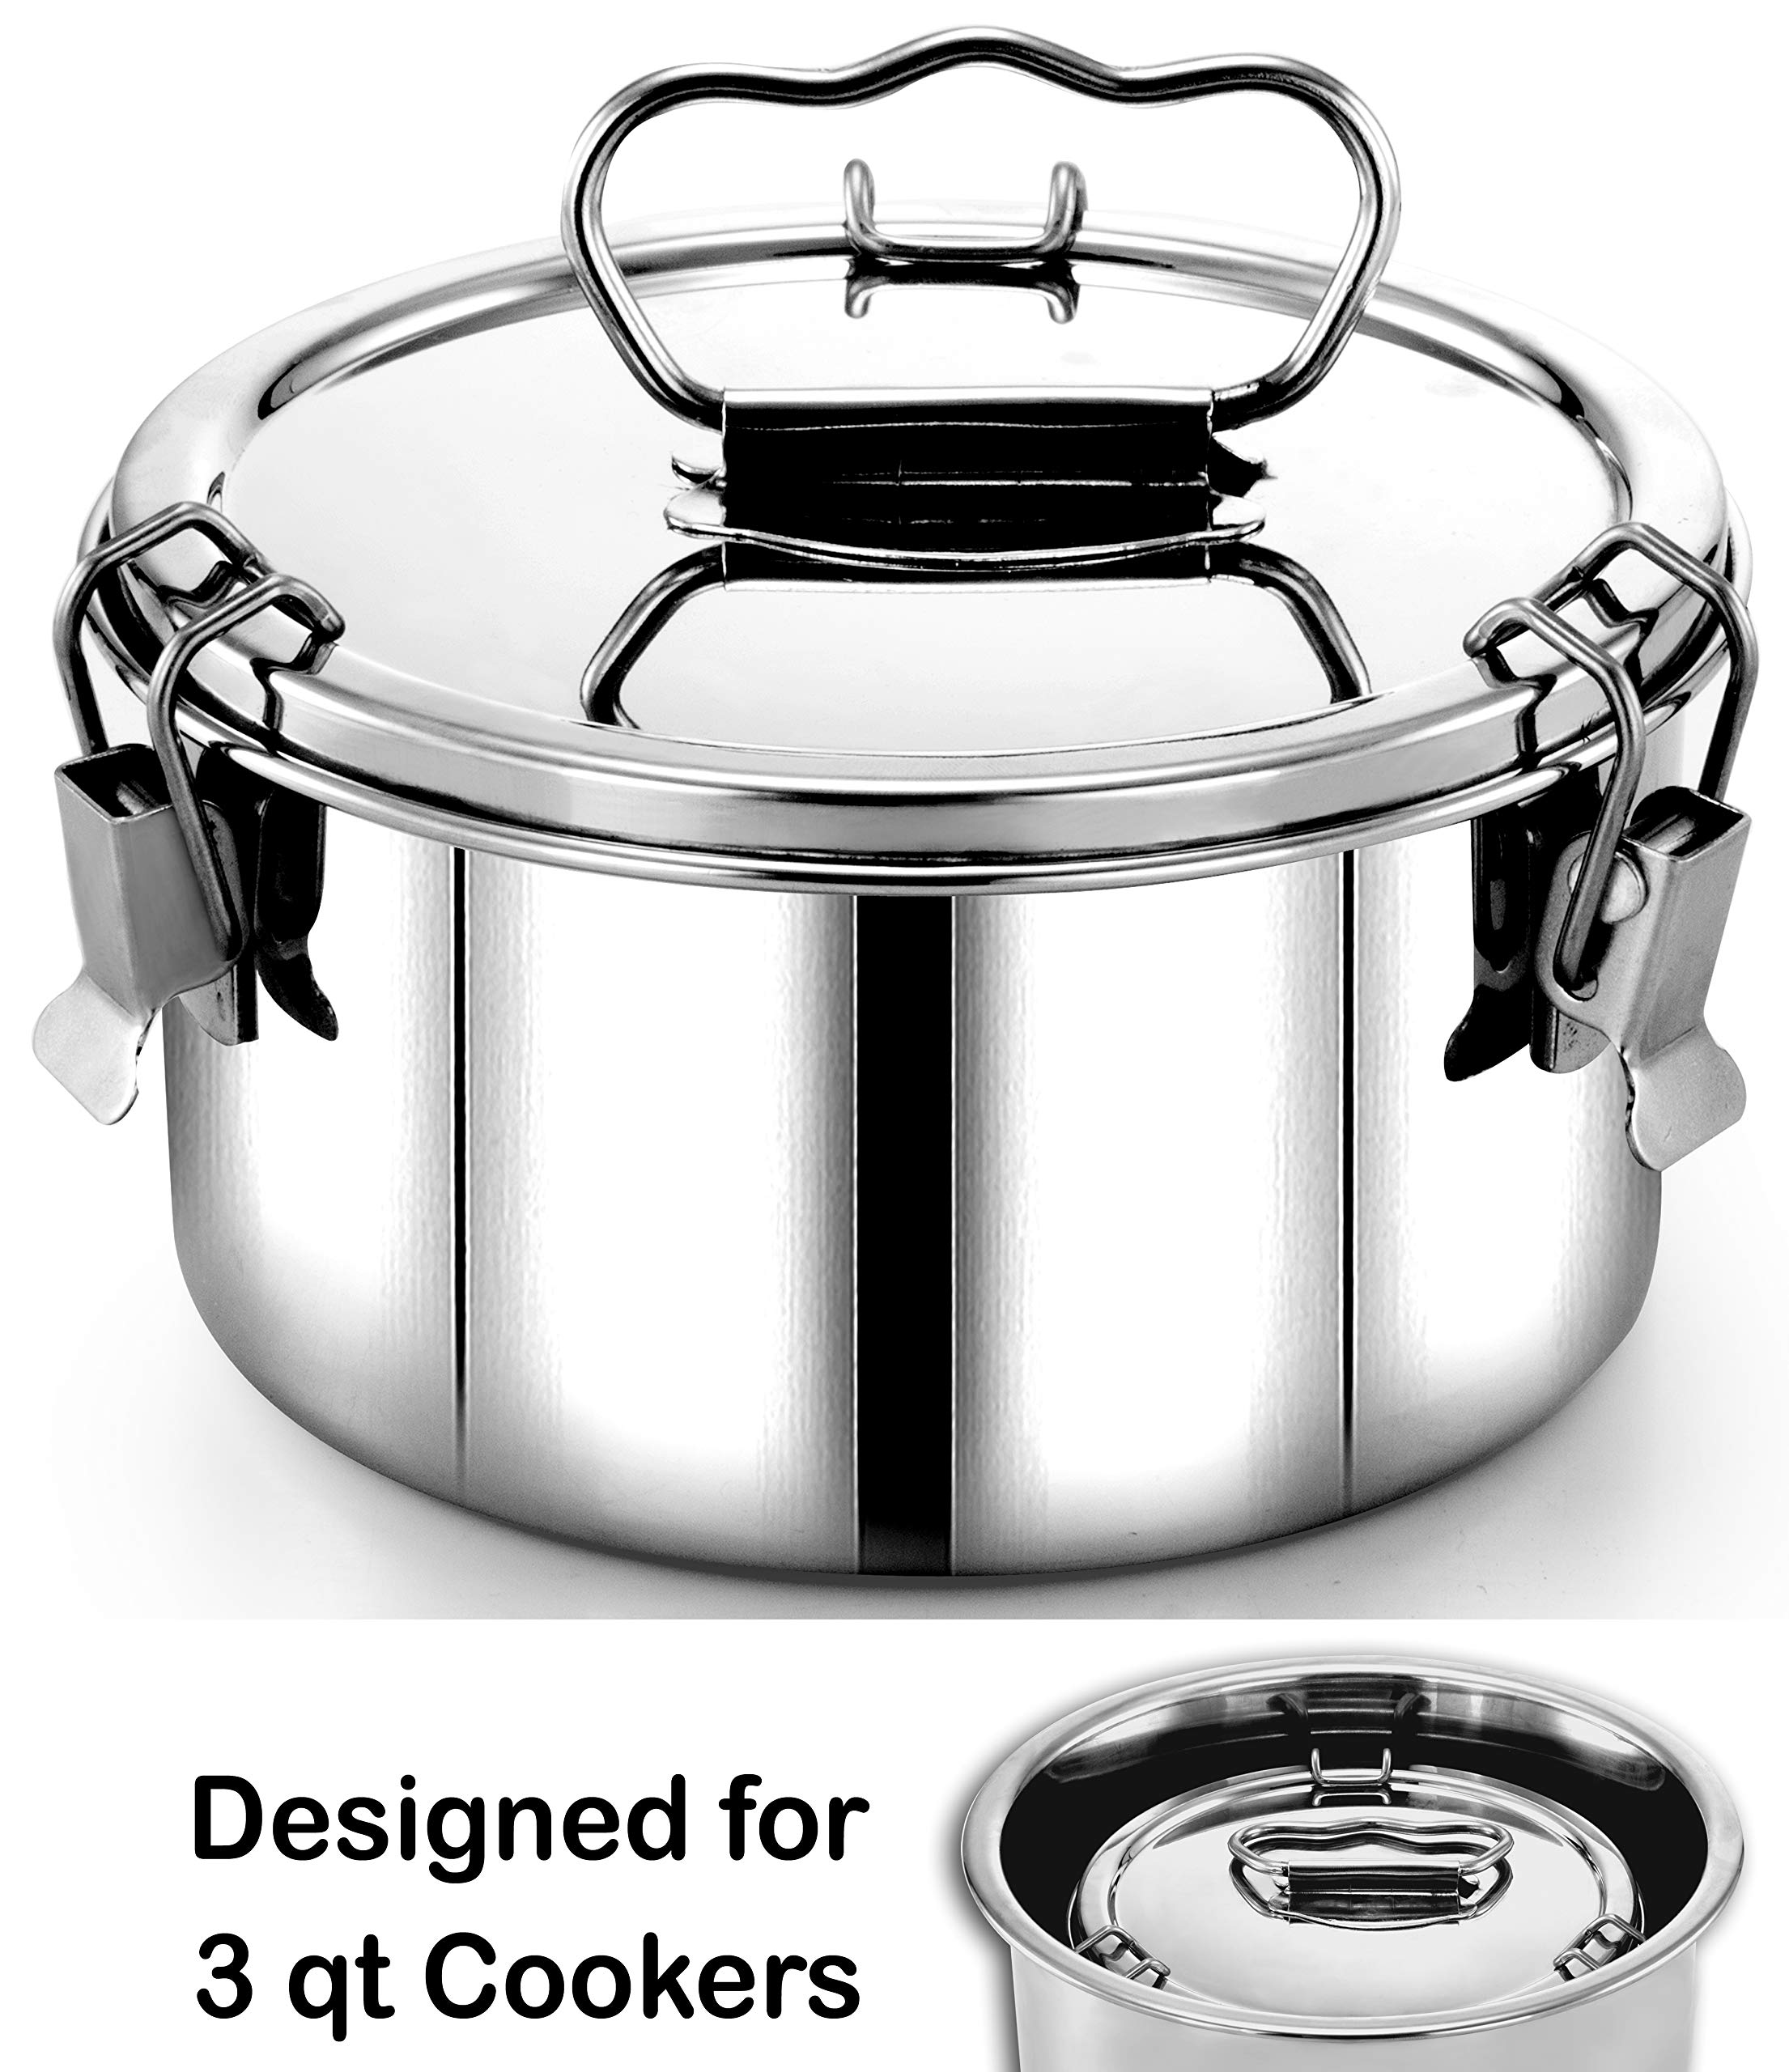 EasyShopForEveryone Stainless Steel Lasagna, Pie, Quiche, Round Au Gratin Dish, Pudding, Tart, Casserole, Bakeware, Flan Mold, 6 Inch Cheesecake Pan, Compatible with 3qt Mini Instant Pot, Pot in Pot by EasyShopForEveryone